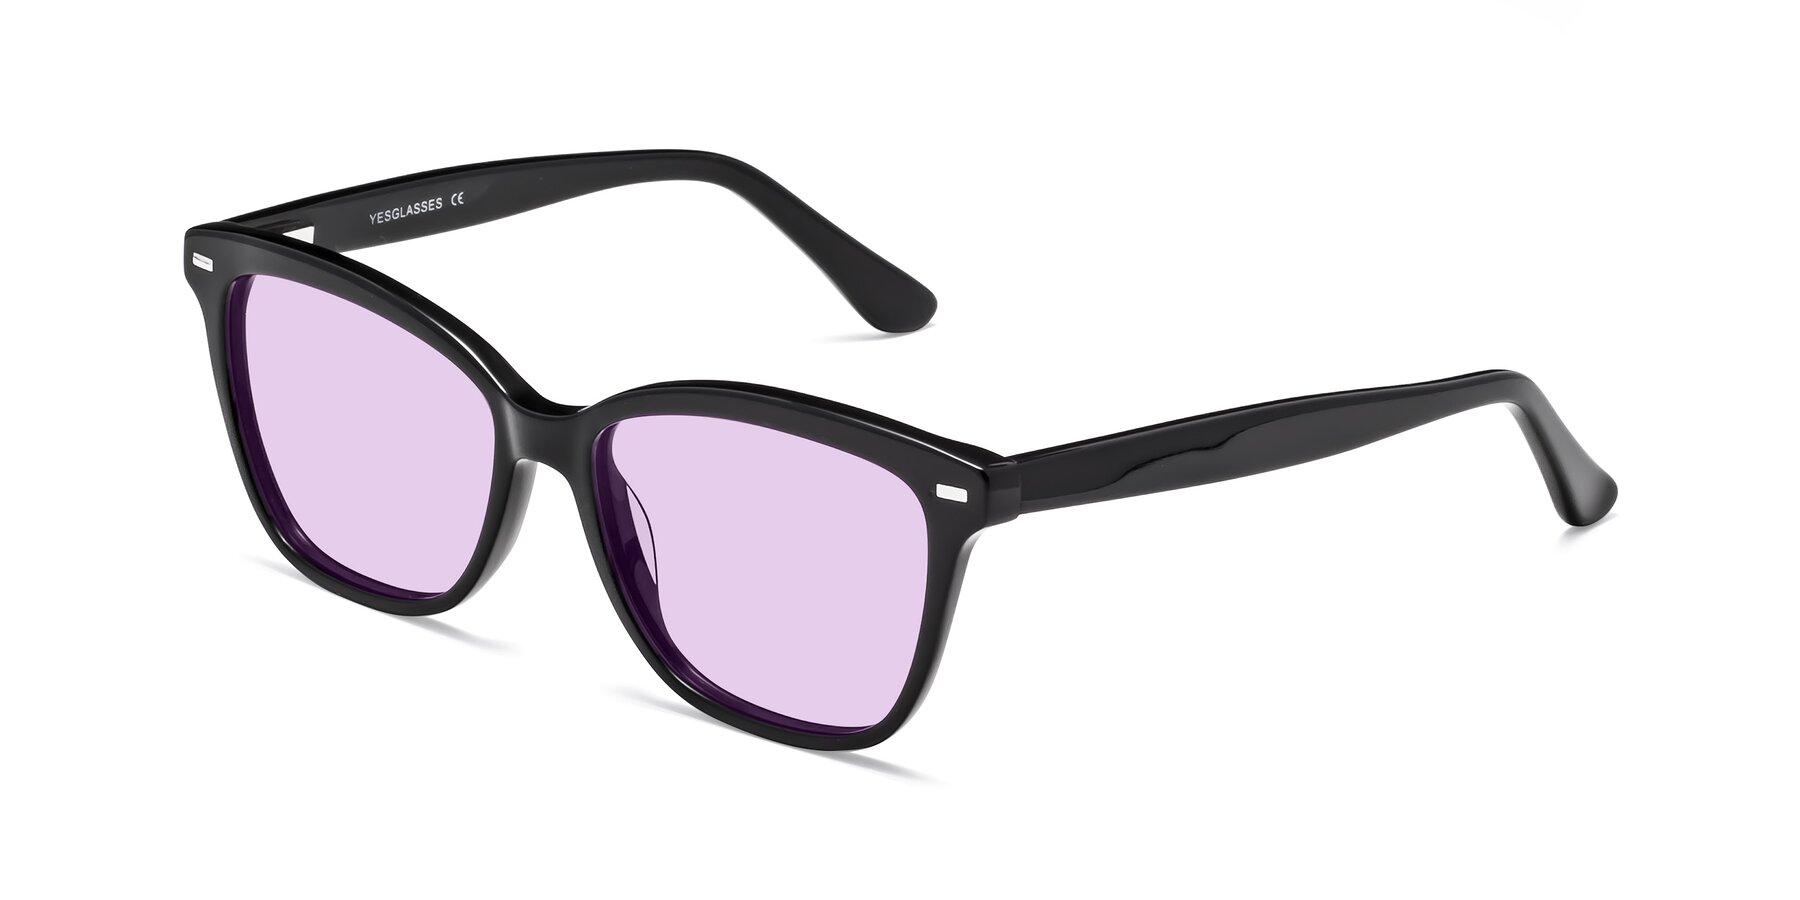 Angle of 17485 in Black with Light Purple Tinted Lenses